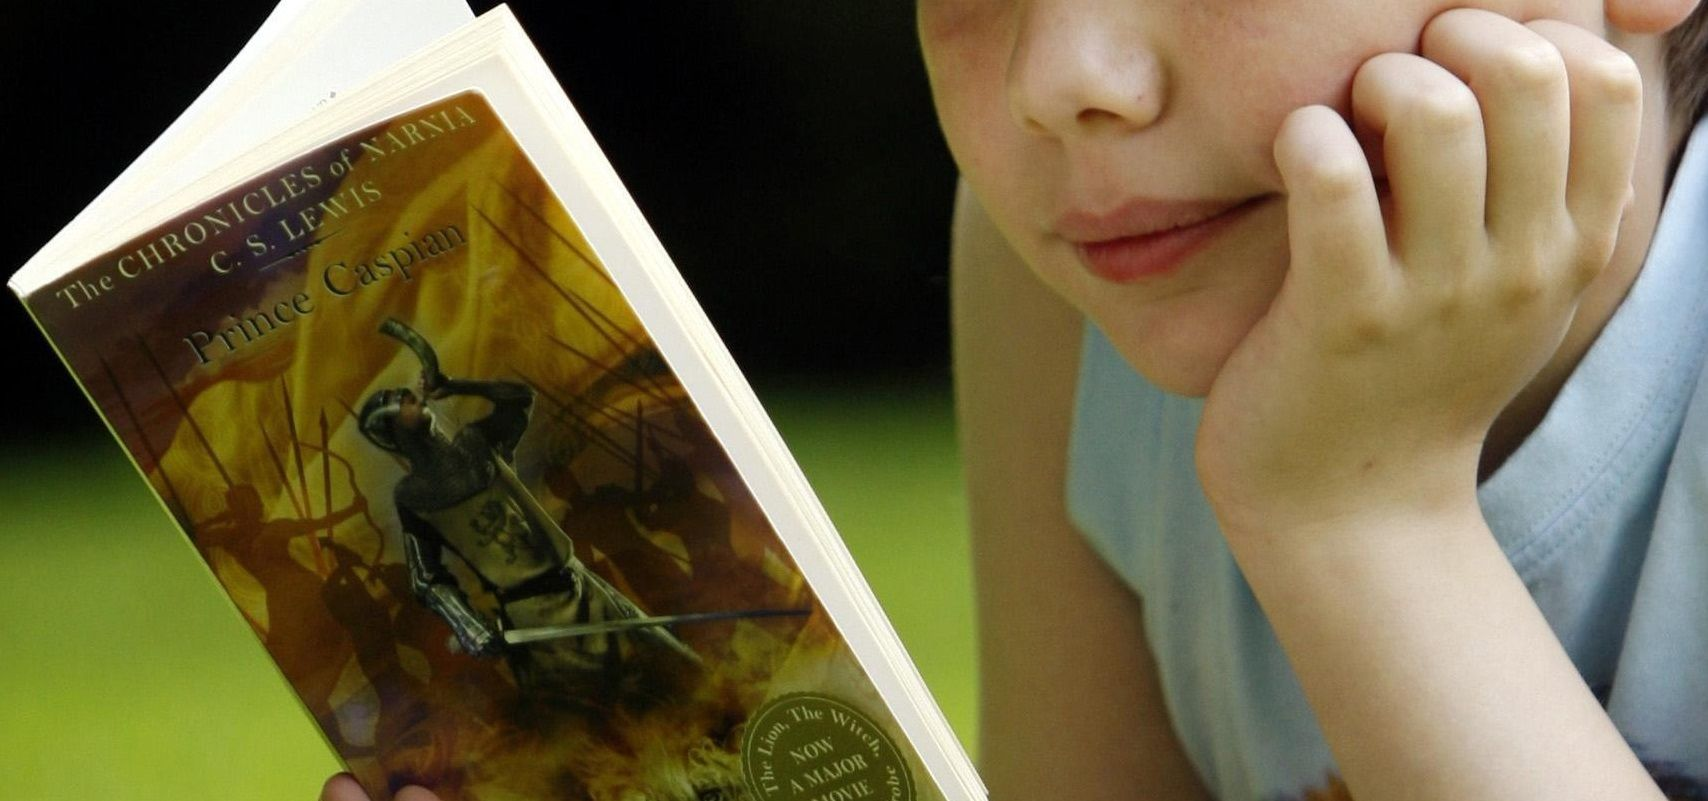 Peterborough Reads and REY® paper launch summertime comic book initiative to help children catch up